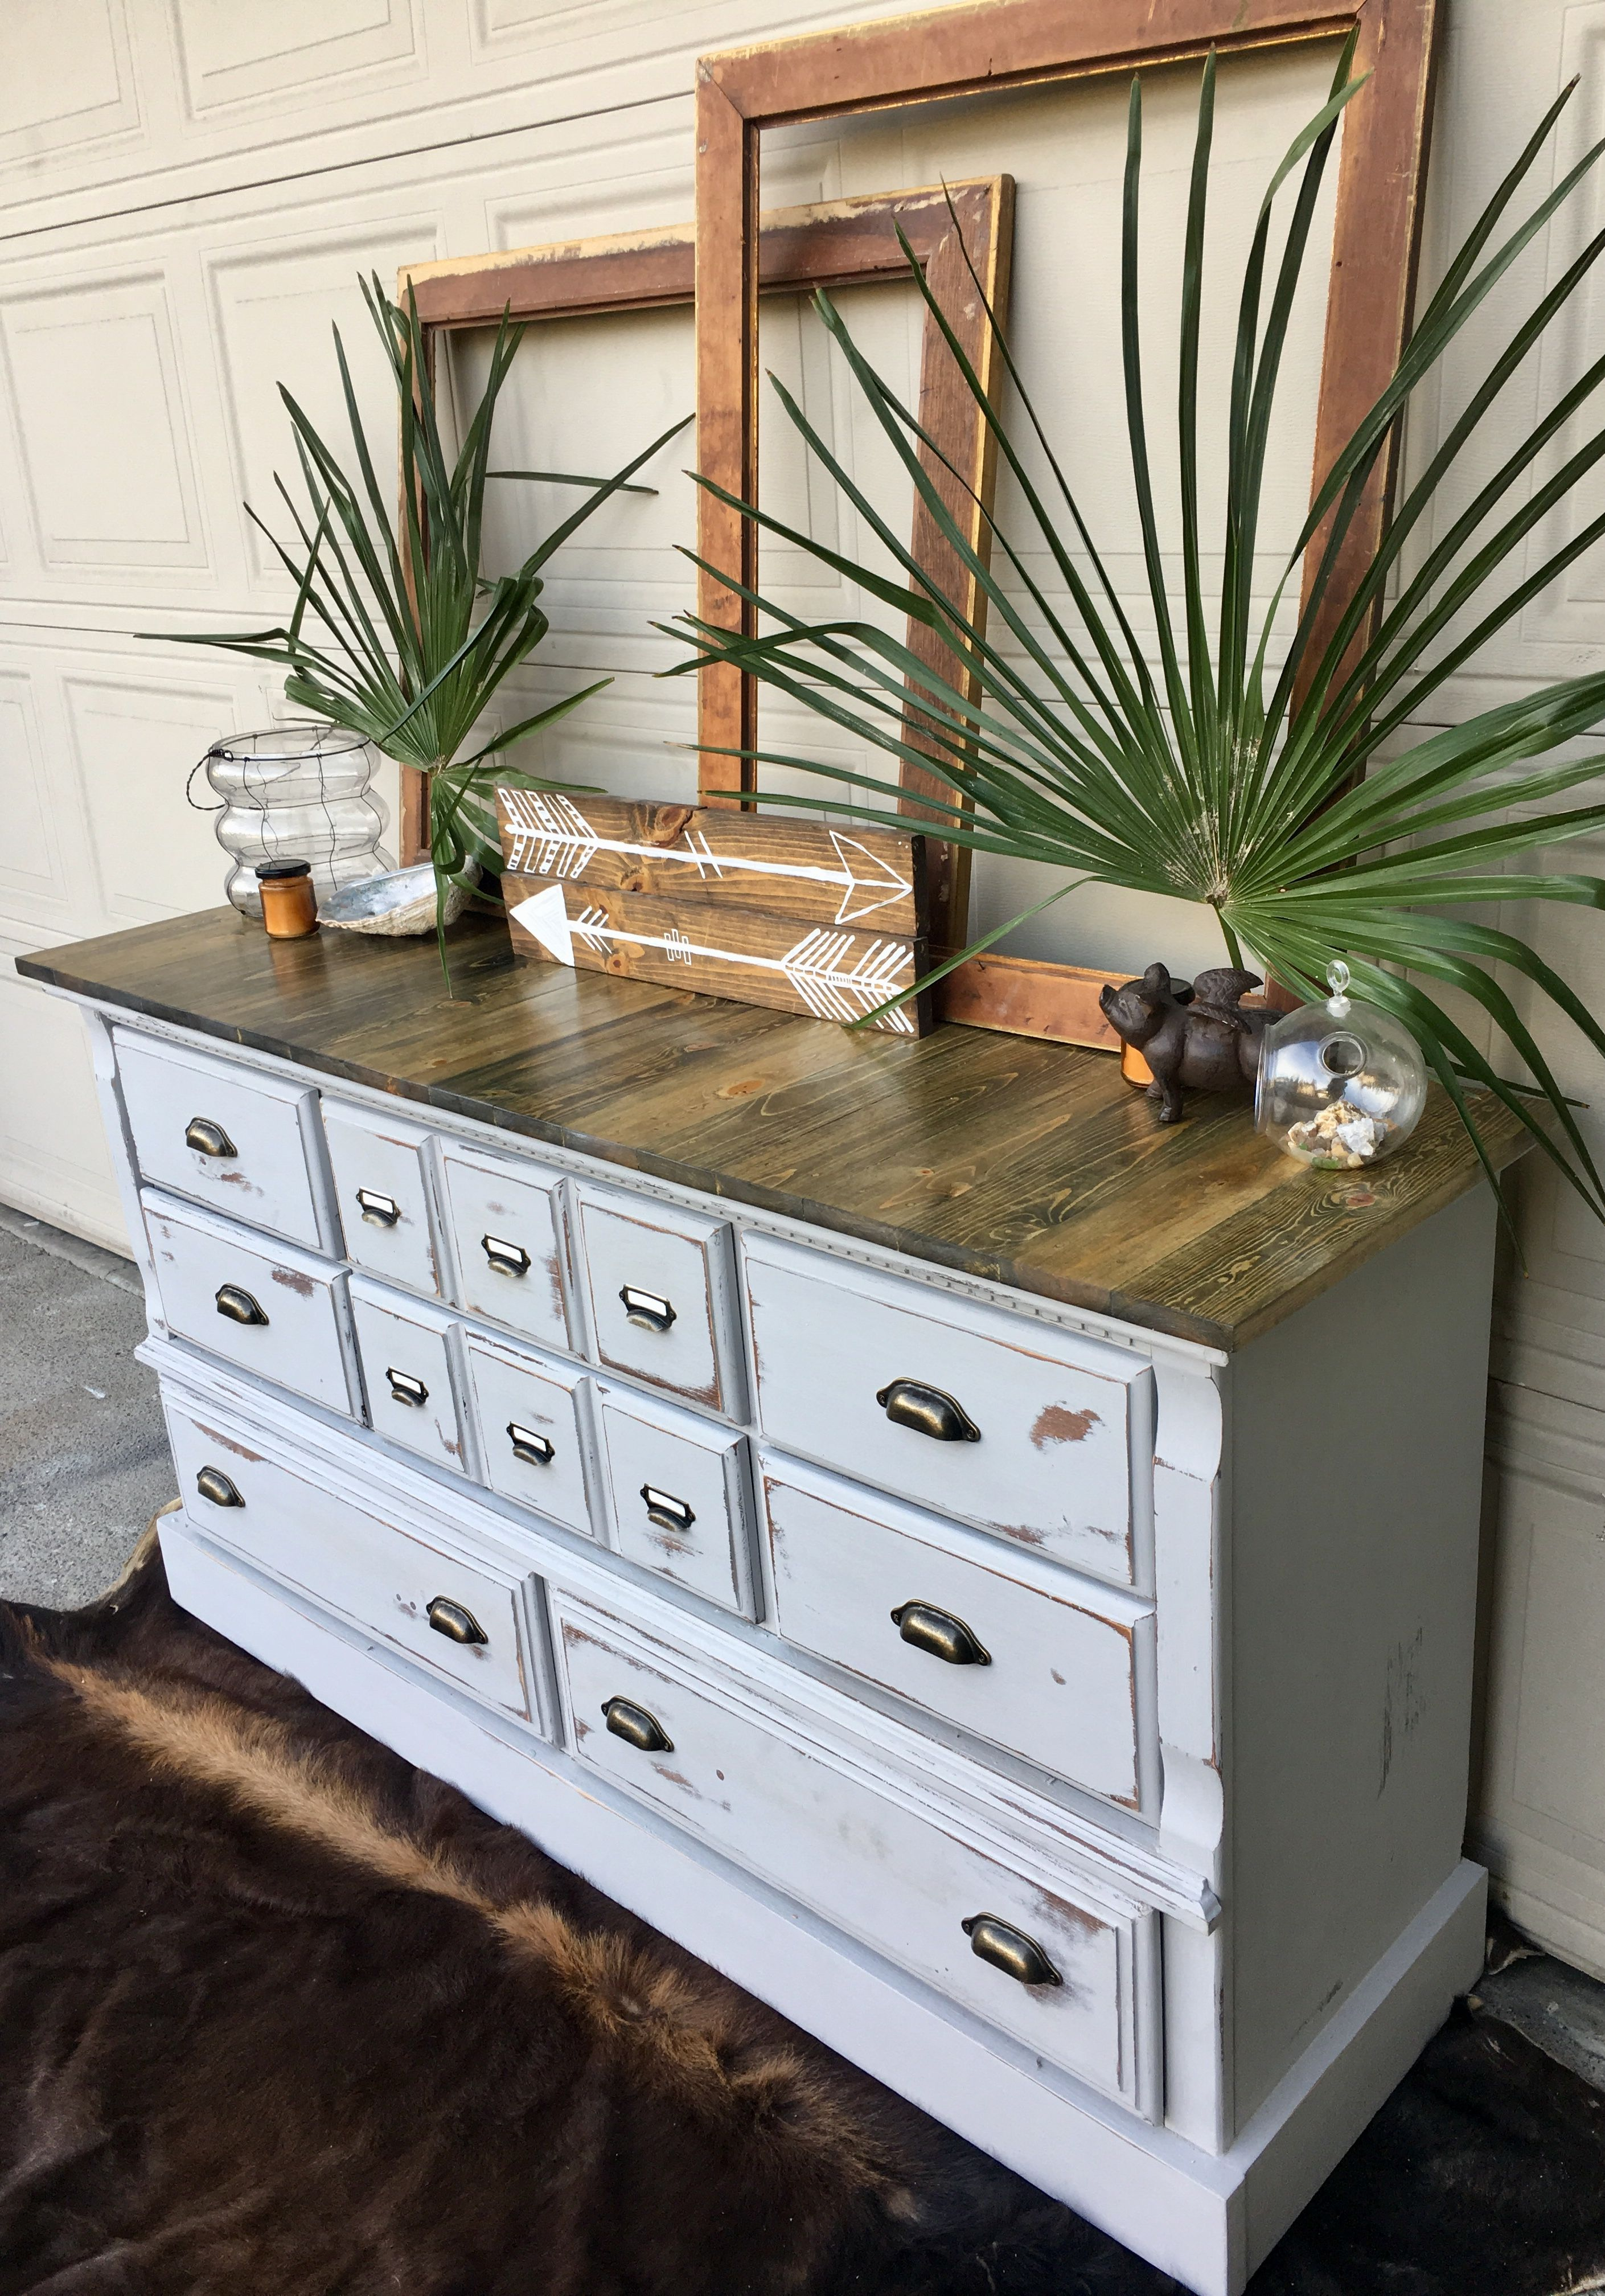 Rustic Farmhouse Buffet Dresser Painted In Rustoleum Chalked Paint In Country Grey New Pine Board Rustoleum Chalk Paint Farmhouse Buffet Rustoleum Chalked